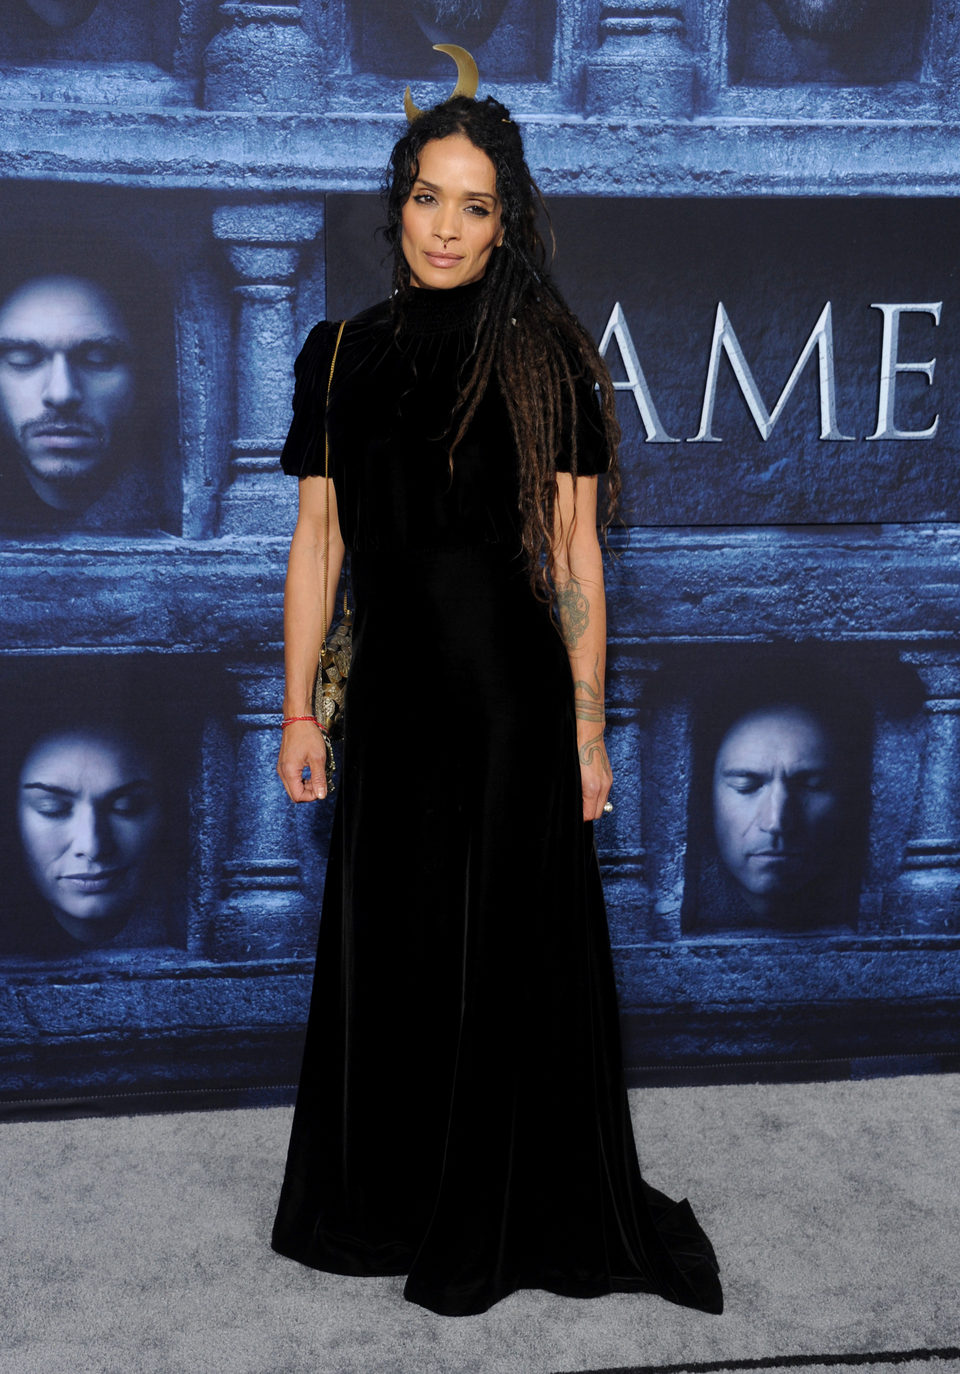 Lisa Bonet at the premiere of 'Game of Thrones' Season Six